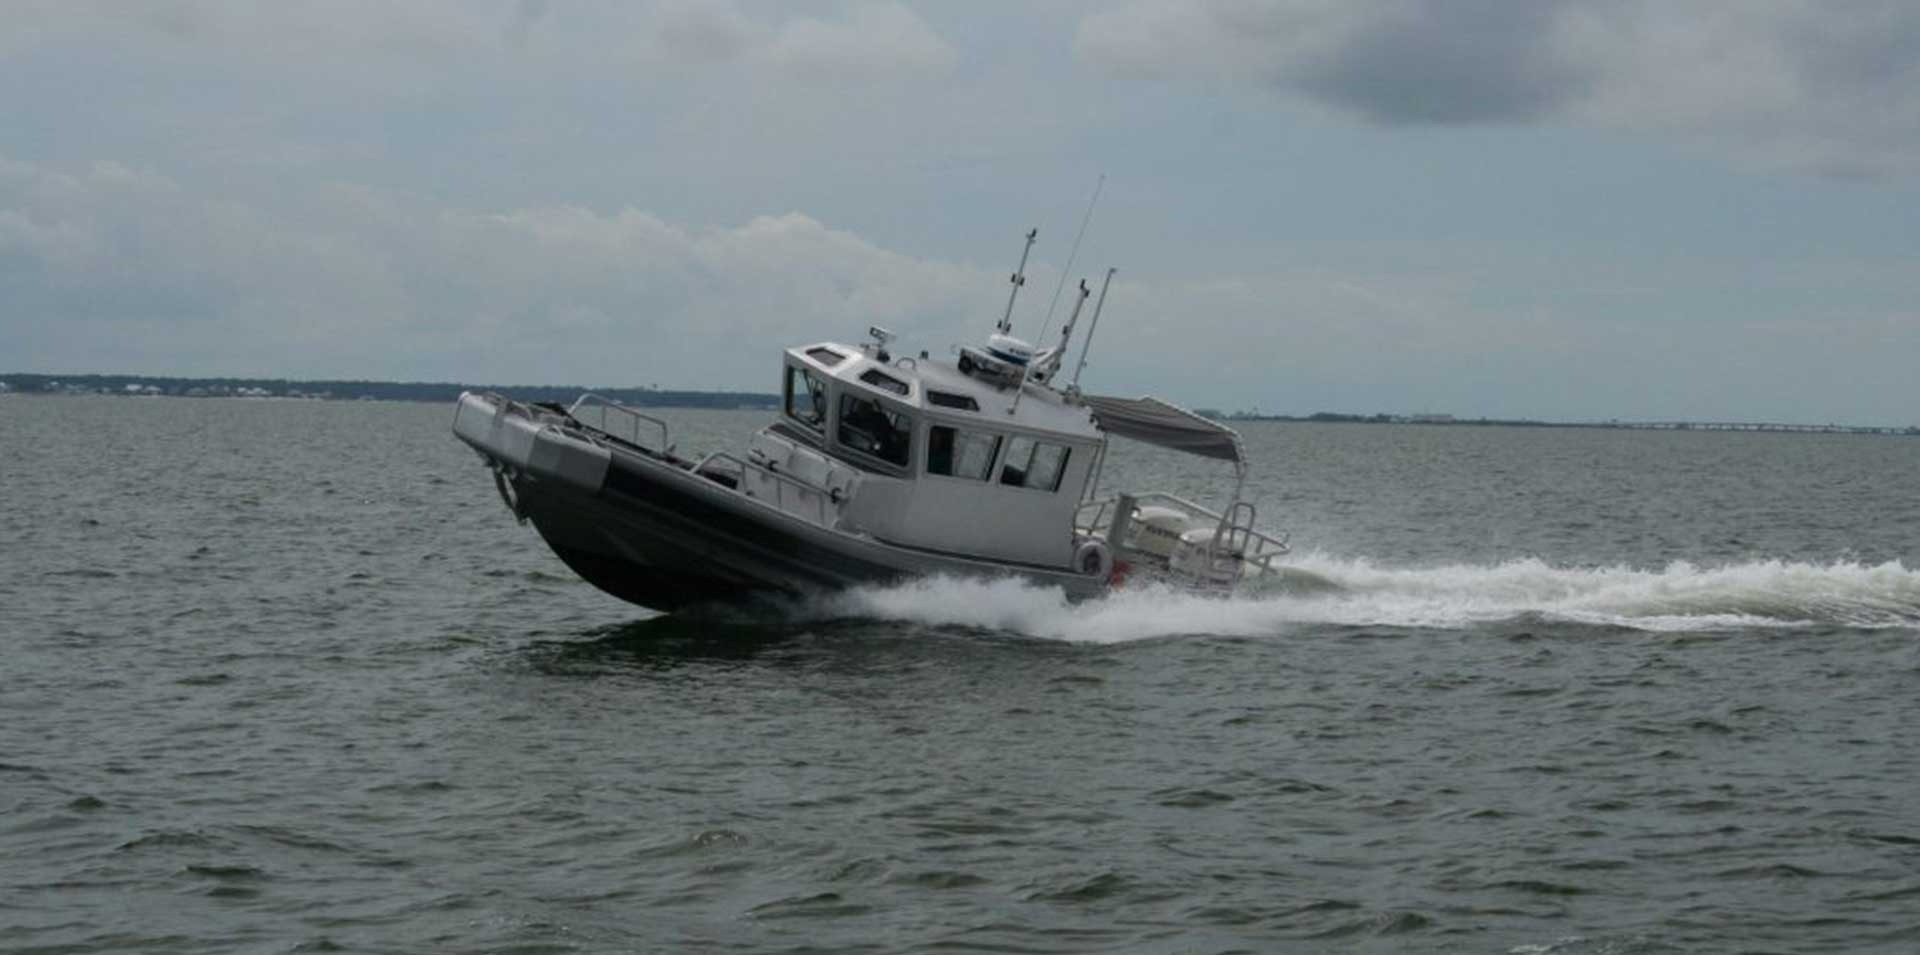 Silver Ships Ambar Series AM 1100 patrol boat with full pilothouse